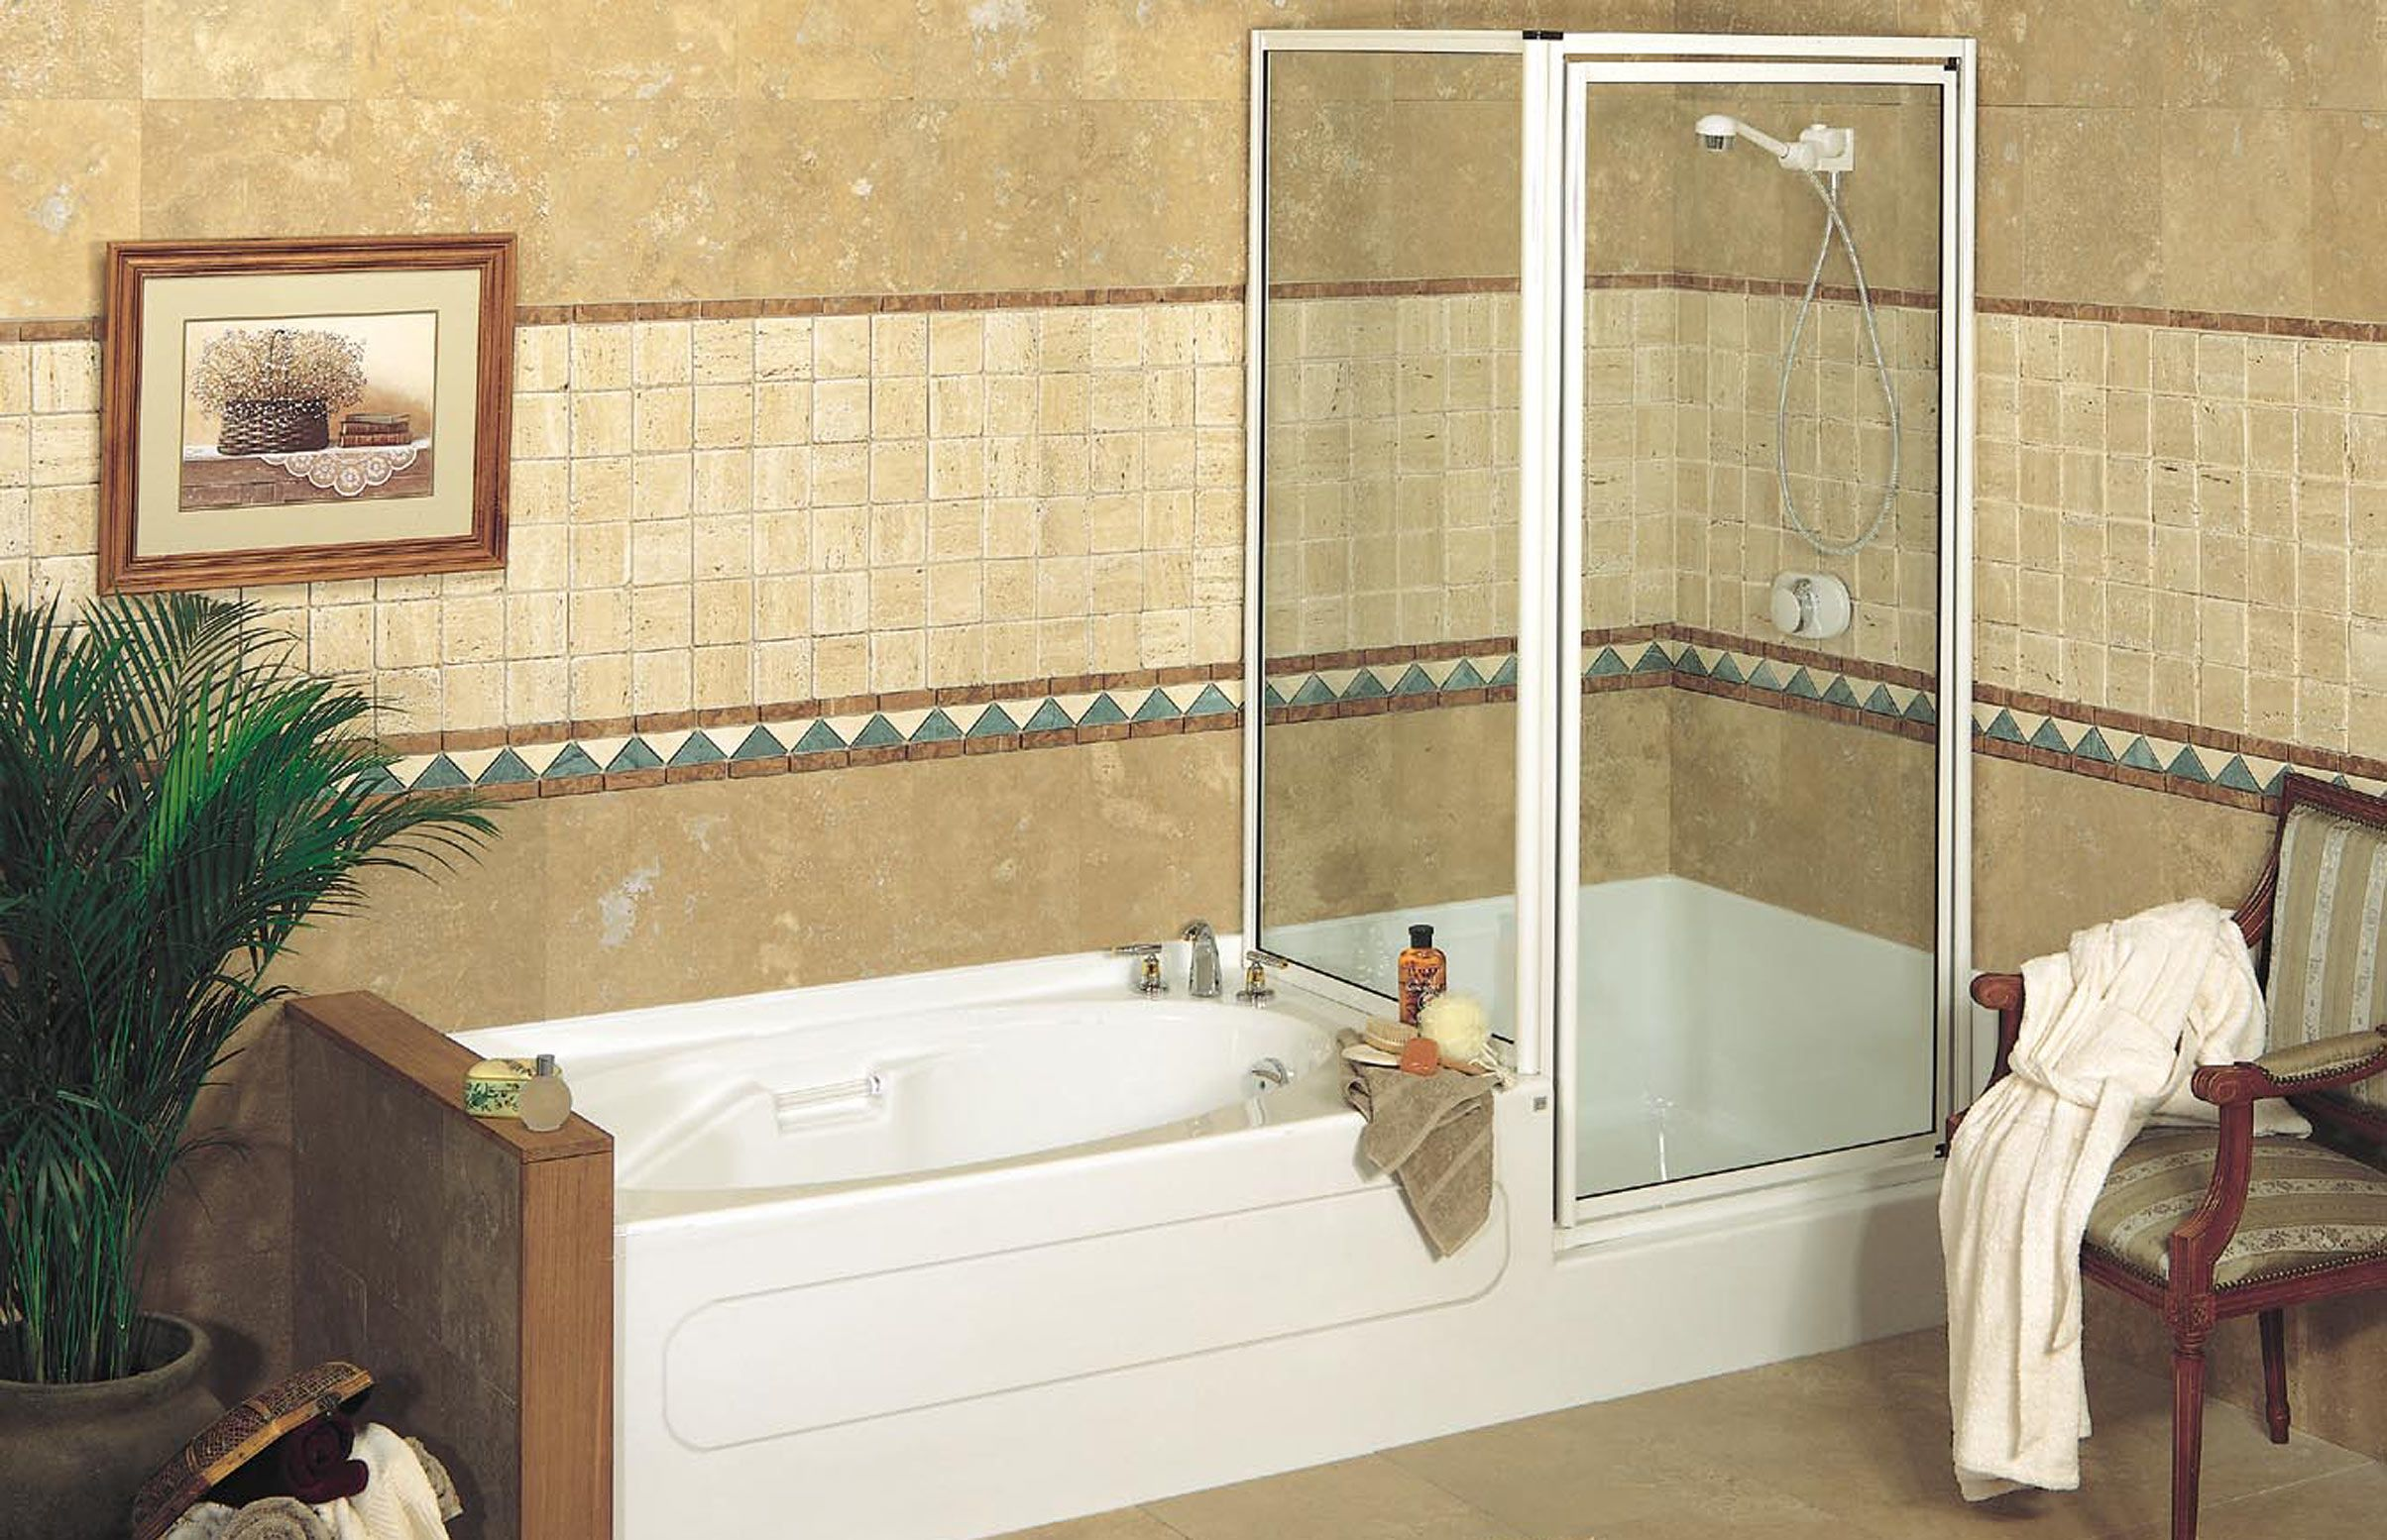 convert shower to tub shower combo. Gorgeous Small Bathroom Design With Pleasant Bathtub Shower Combo  Designs Tub Ideas APEX 96 8 ft Alcove or showers bathtub MAAX Professional